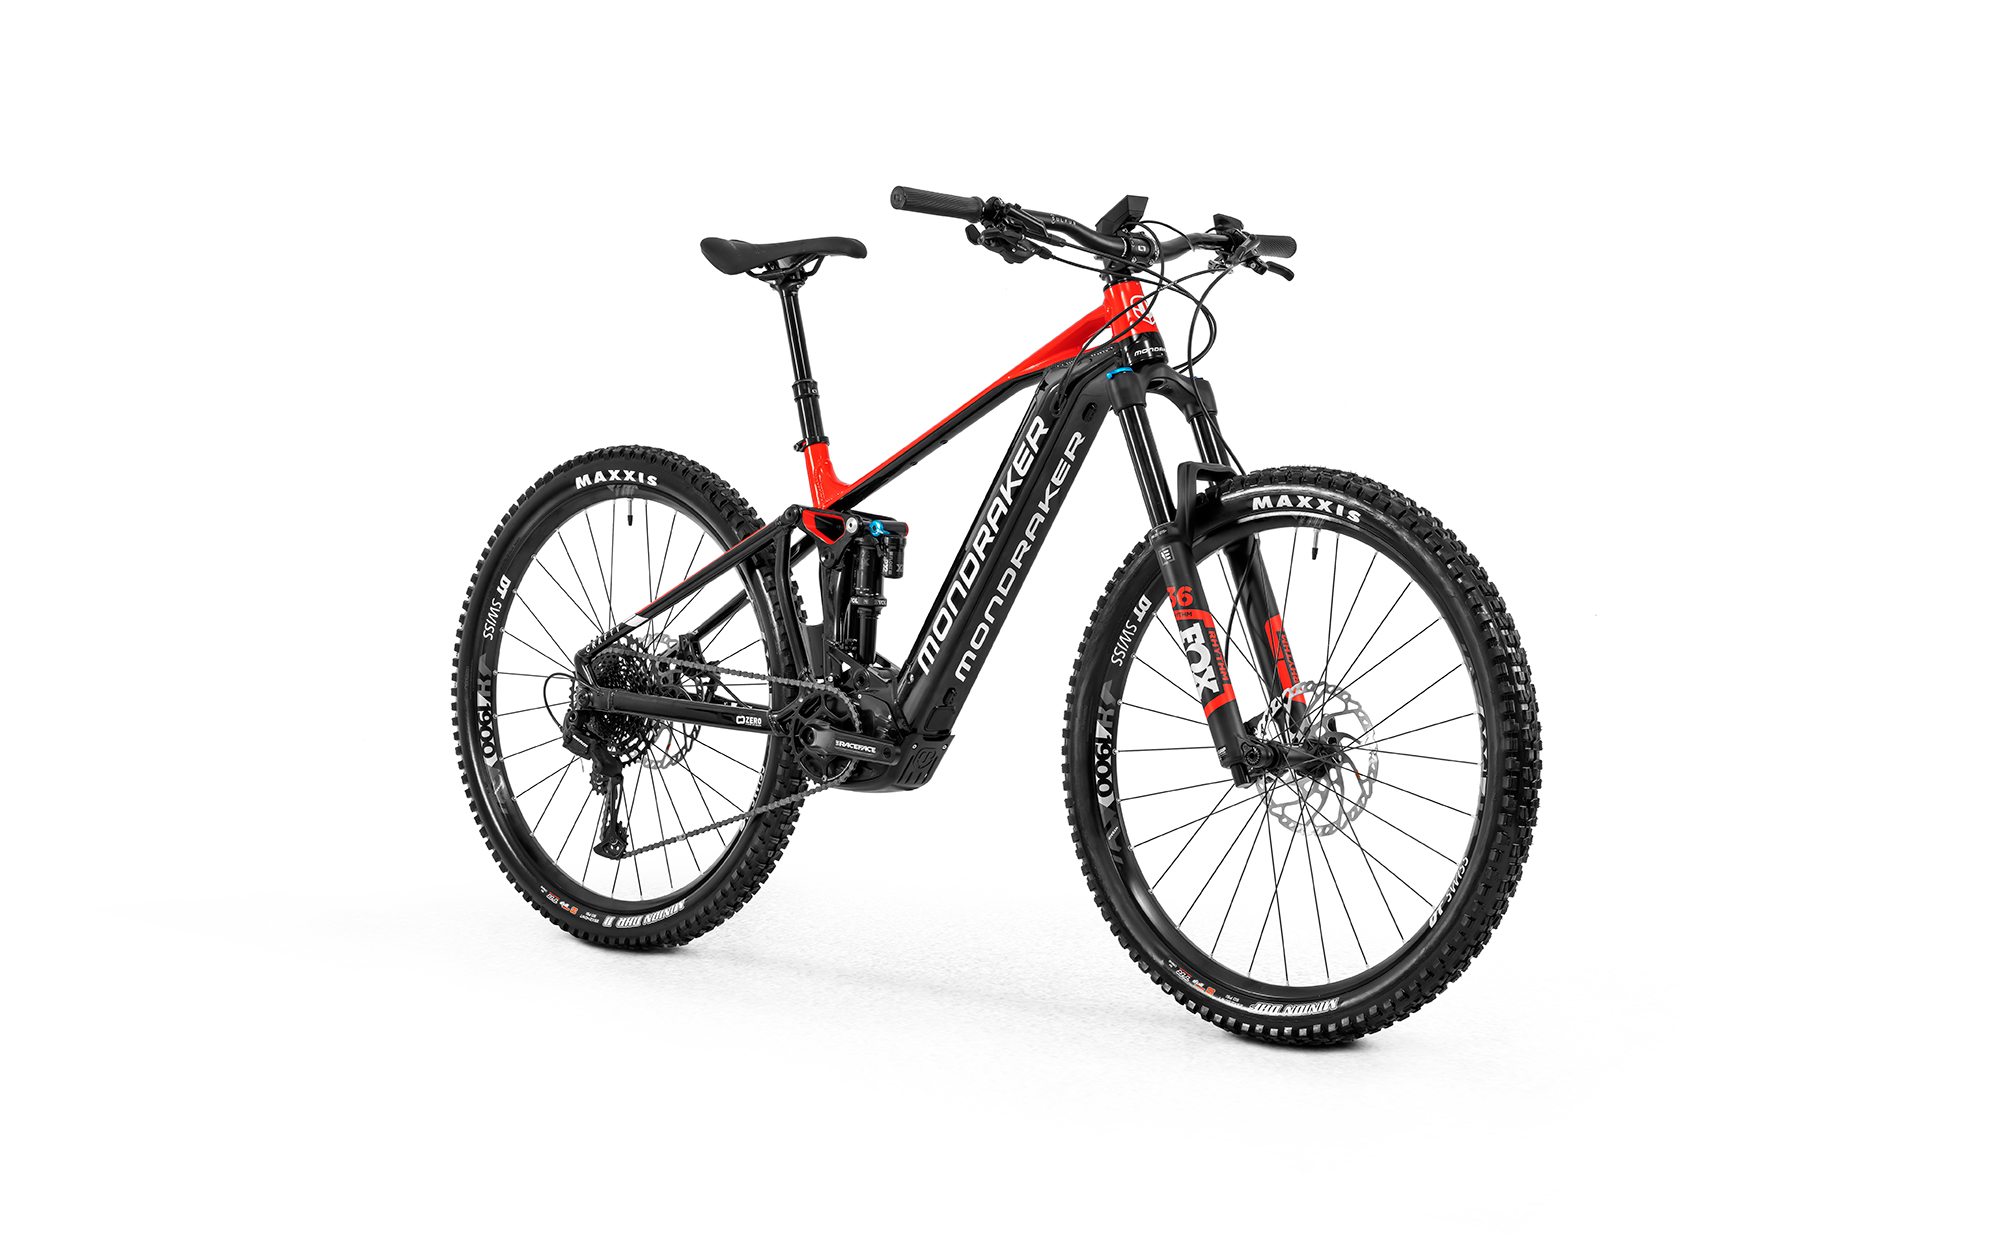 Crafty R 29, black/flame red/white, 2020